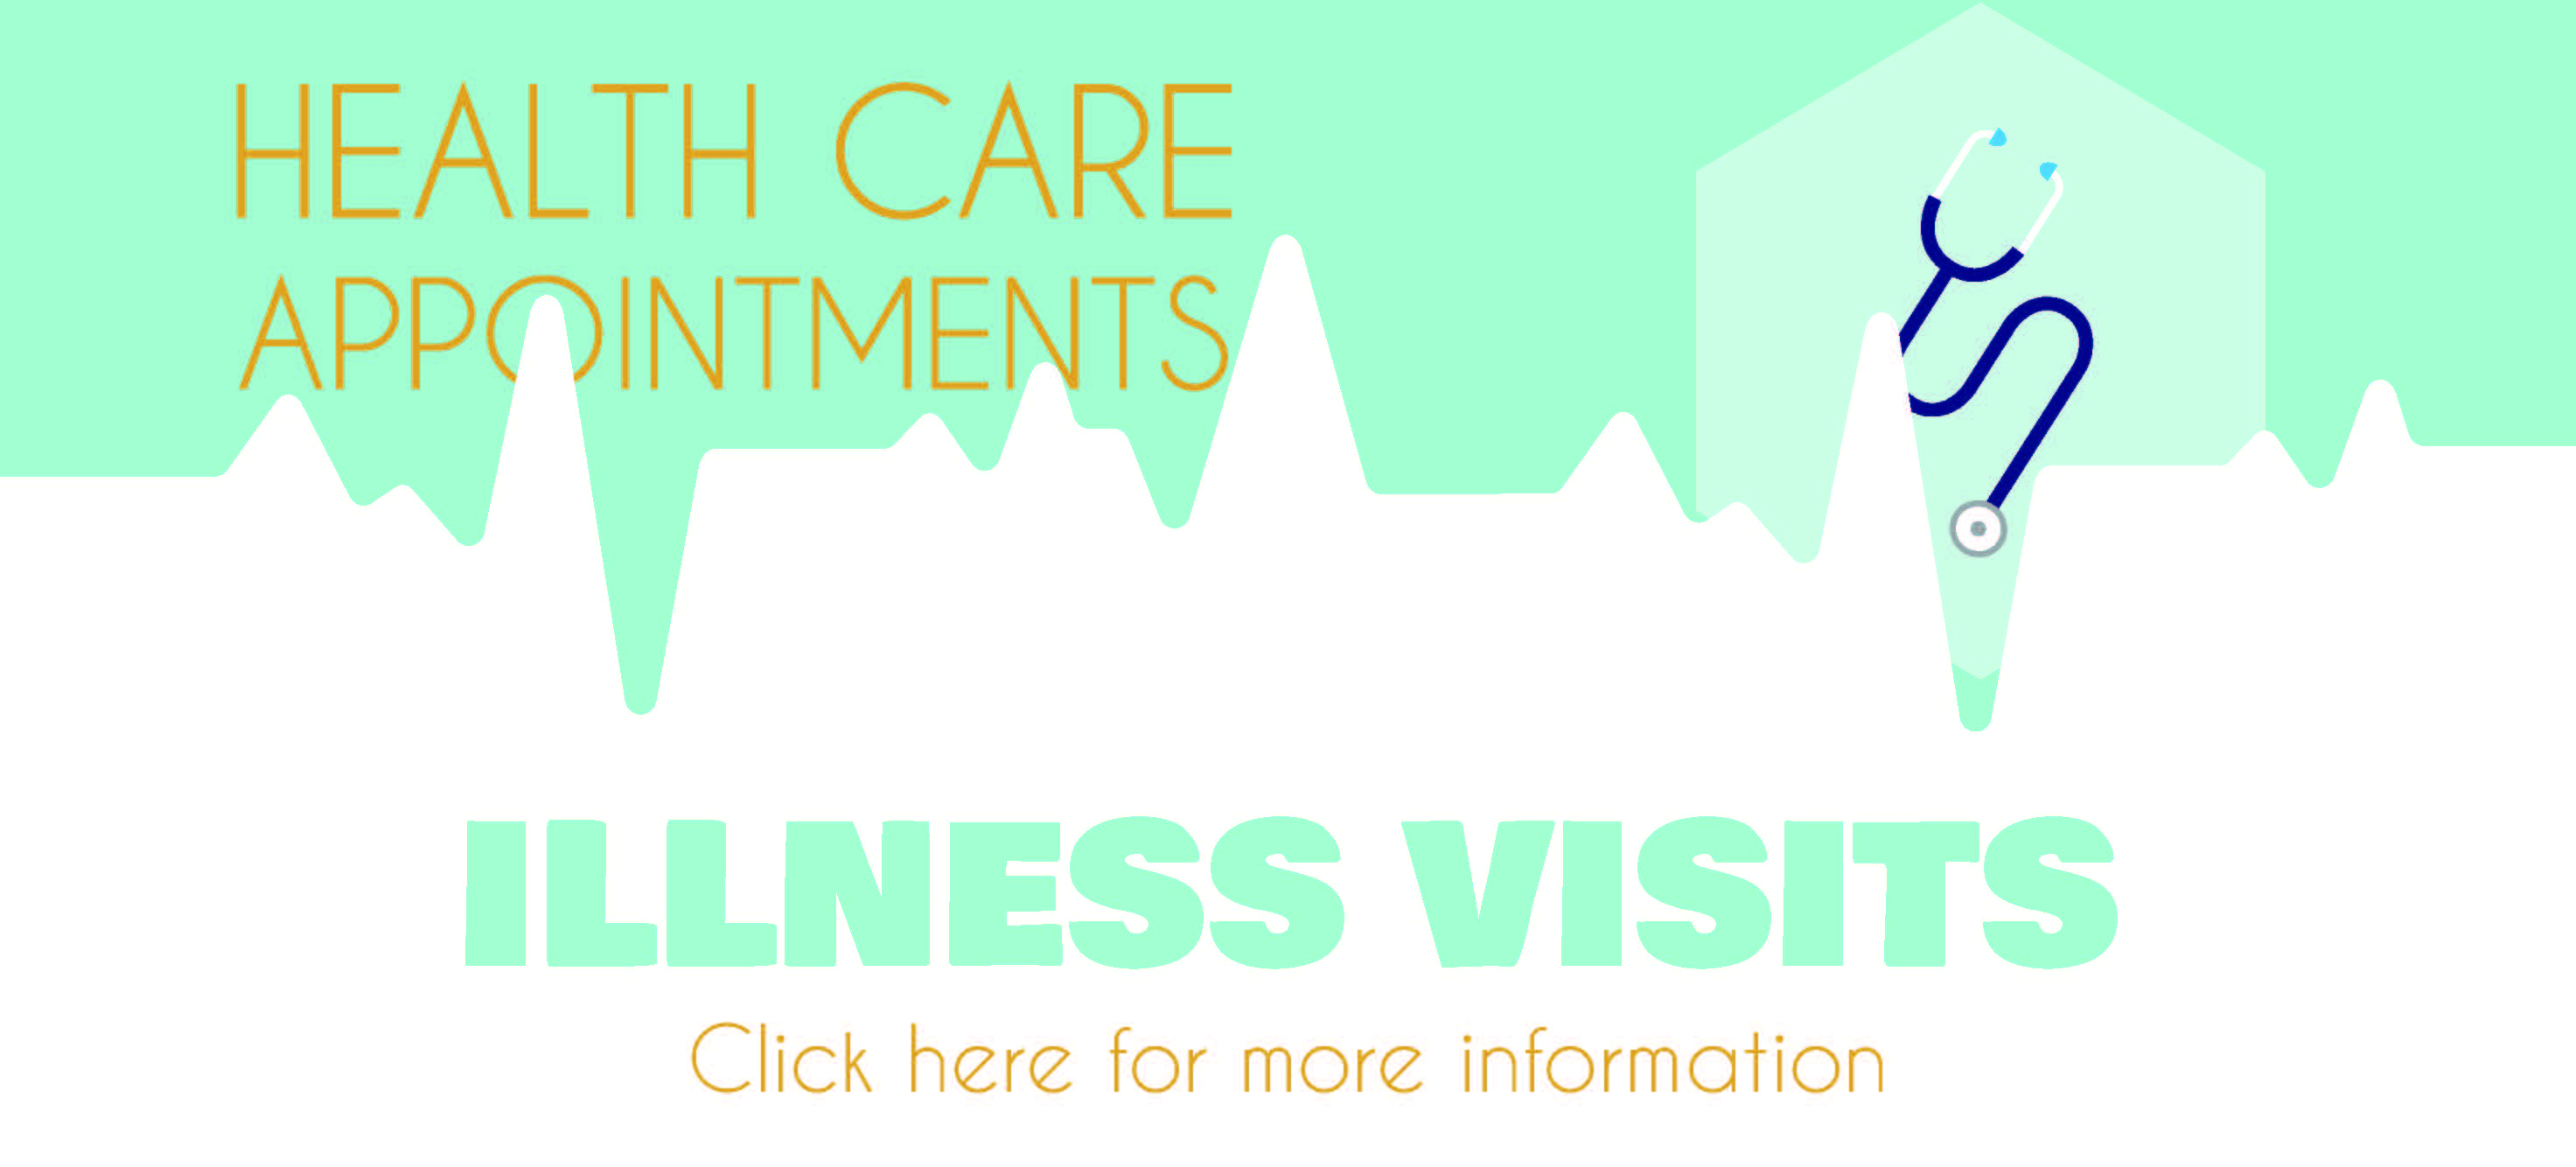 Illness Visits banner with stethoscope